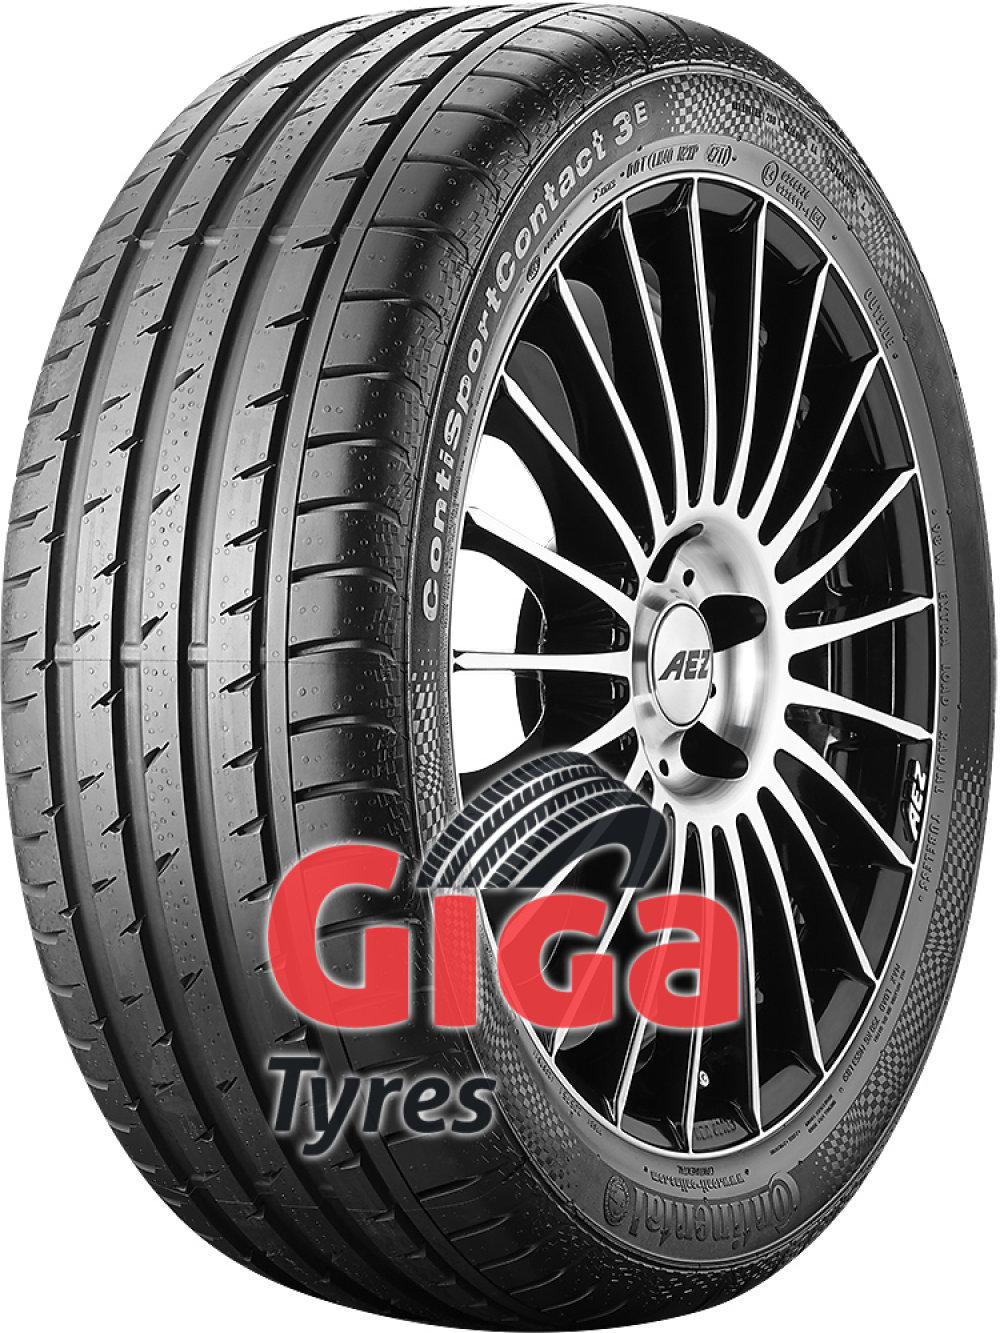 Continental ContiSportContact 3 E SSR ( 235/45 R17 97W with kerbing rib, runflat )